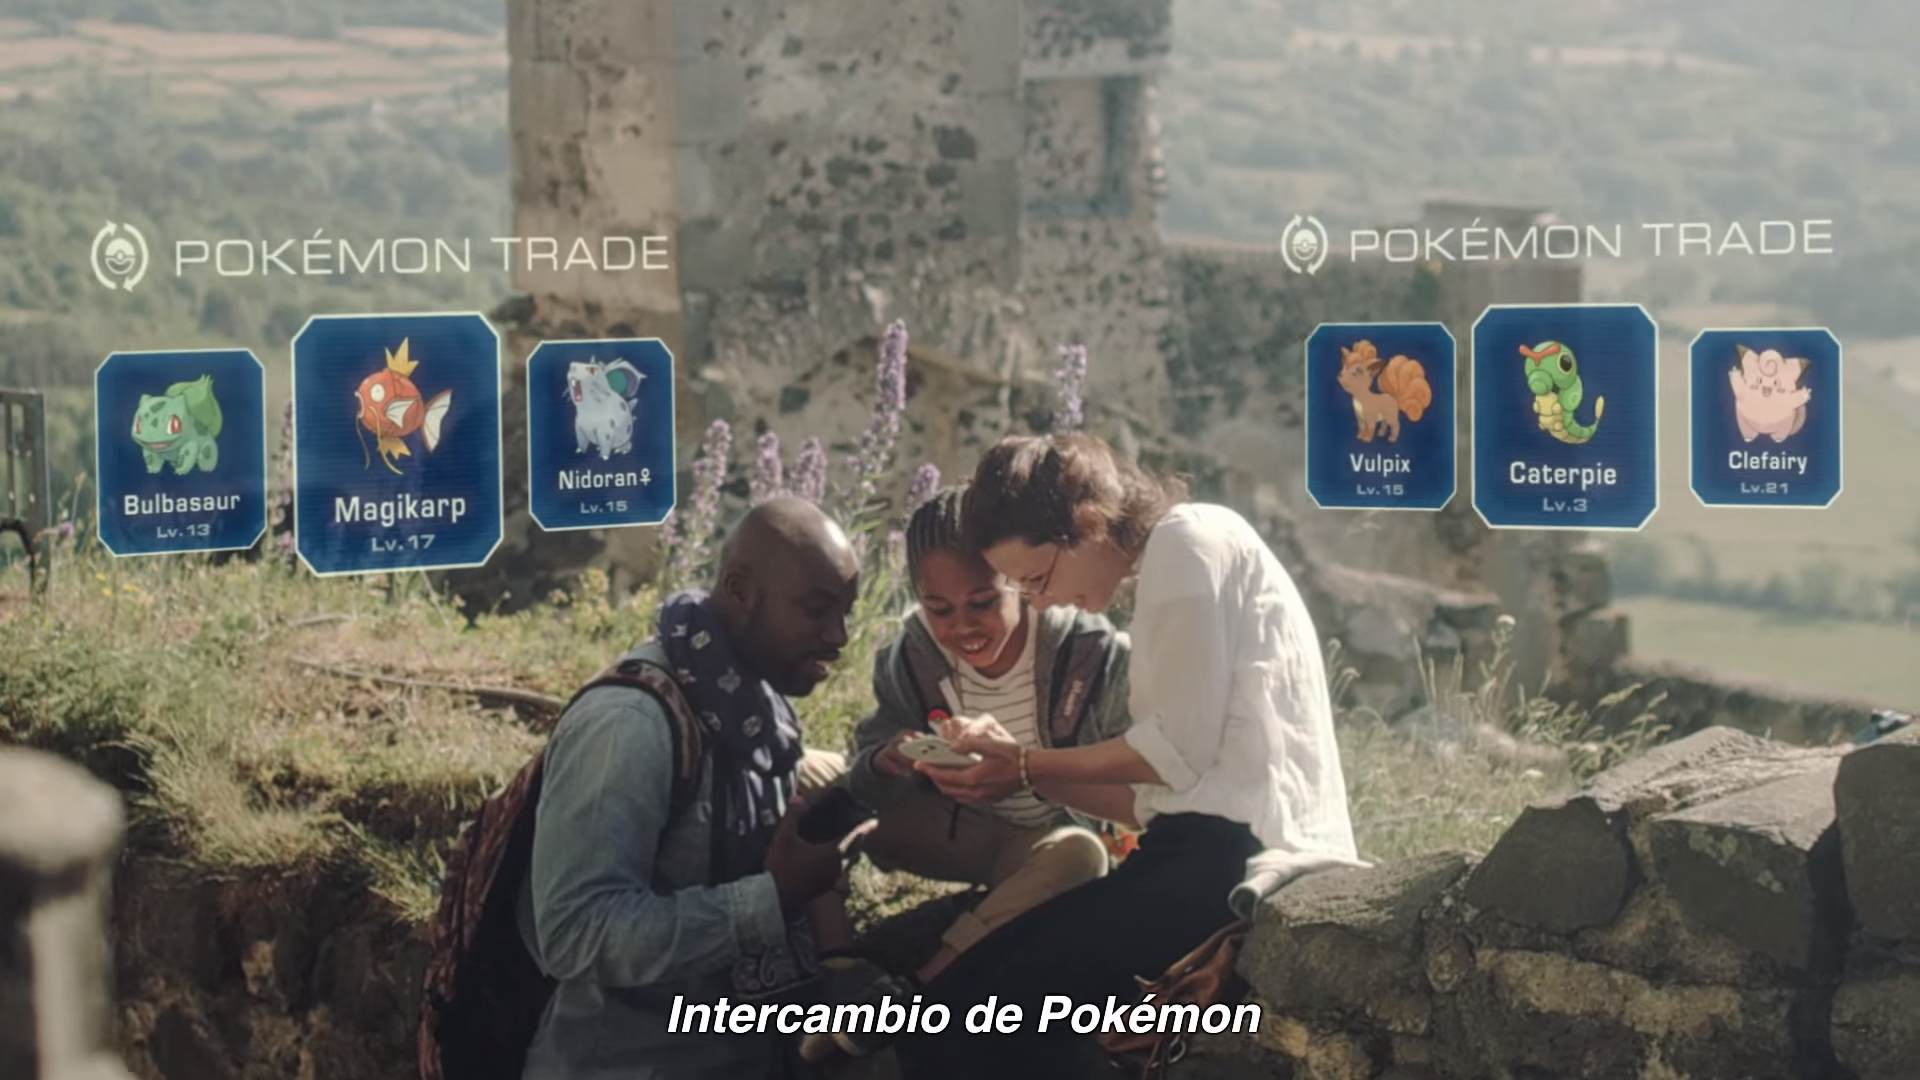 Pokemon GO youtu.be-_01rJtPEiwQ (1)